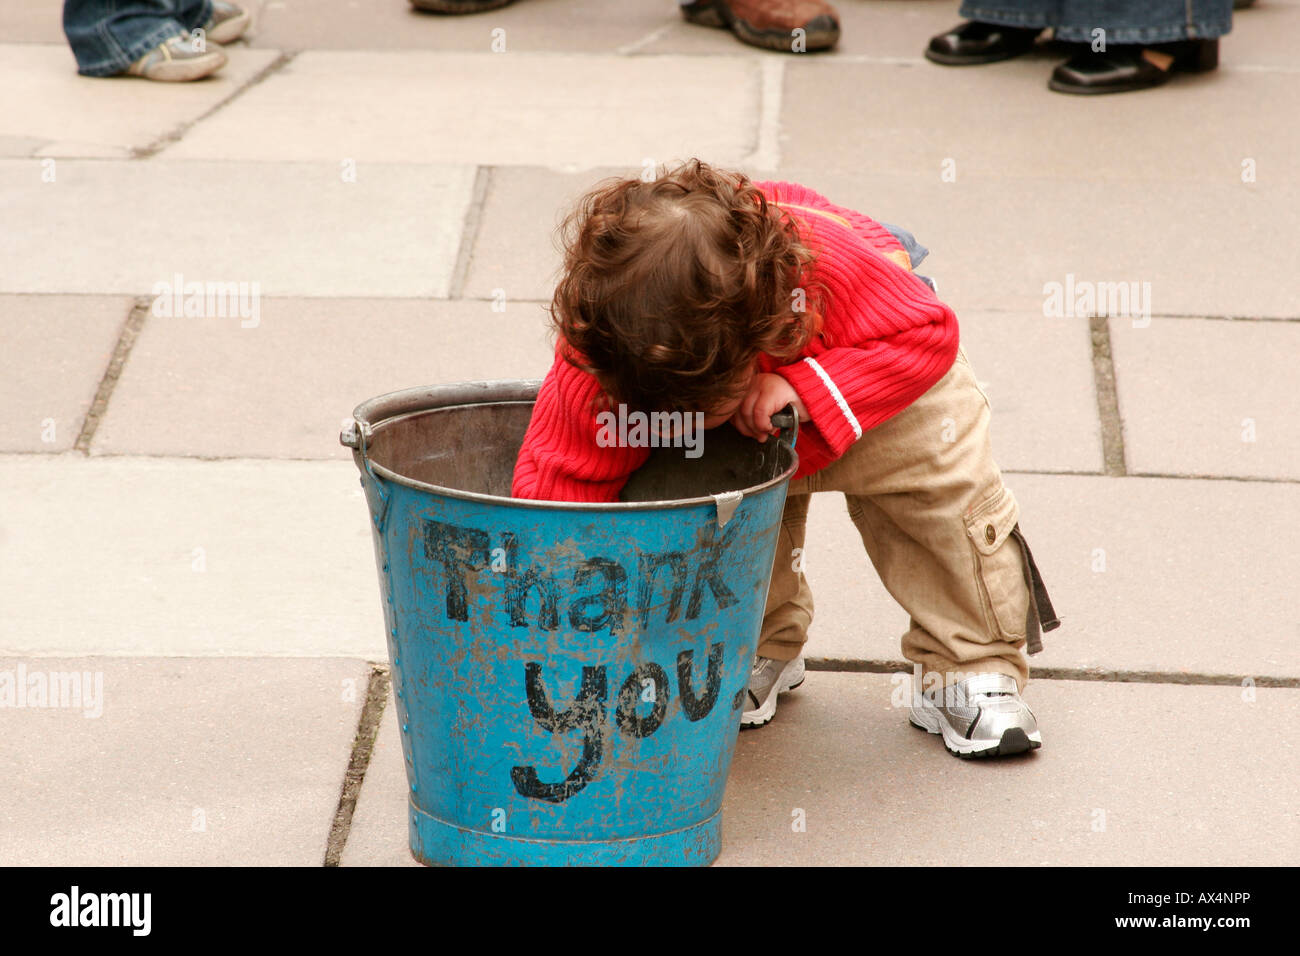 young boy putting money in a busker's bucket, with the words Thank You on the side - Stock Image